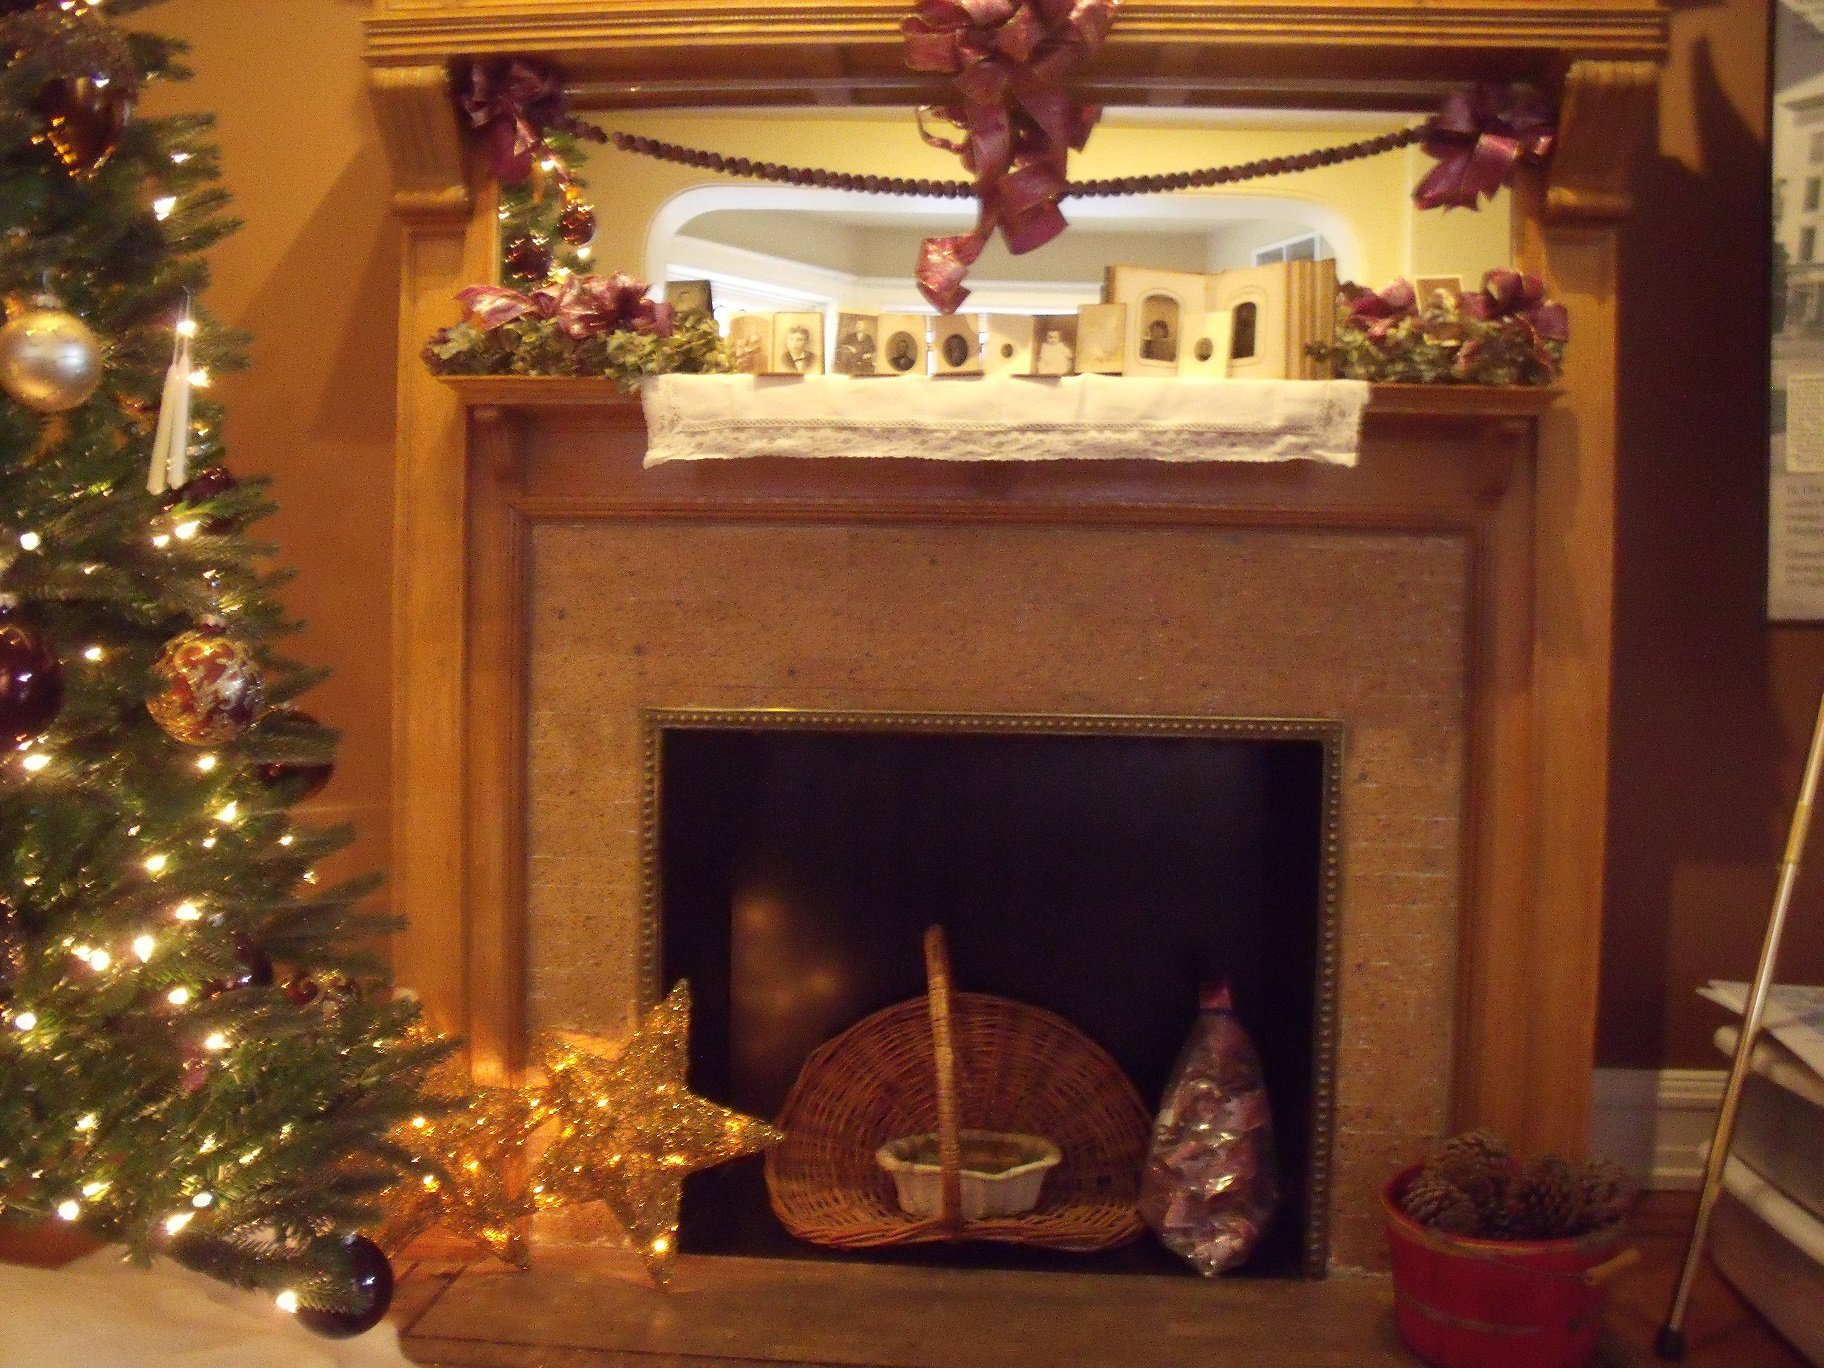 Another photo of the Goodridge House during the holiday season.